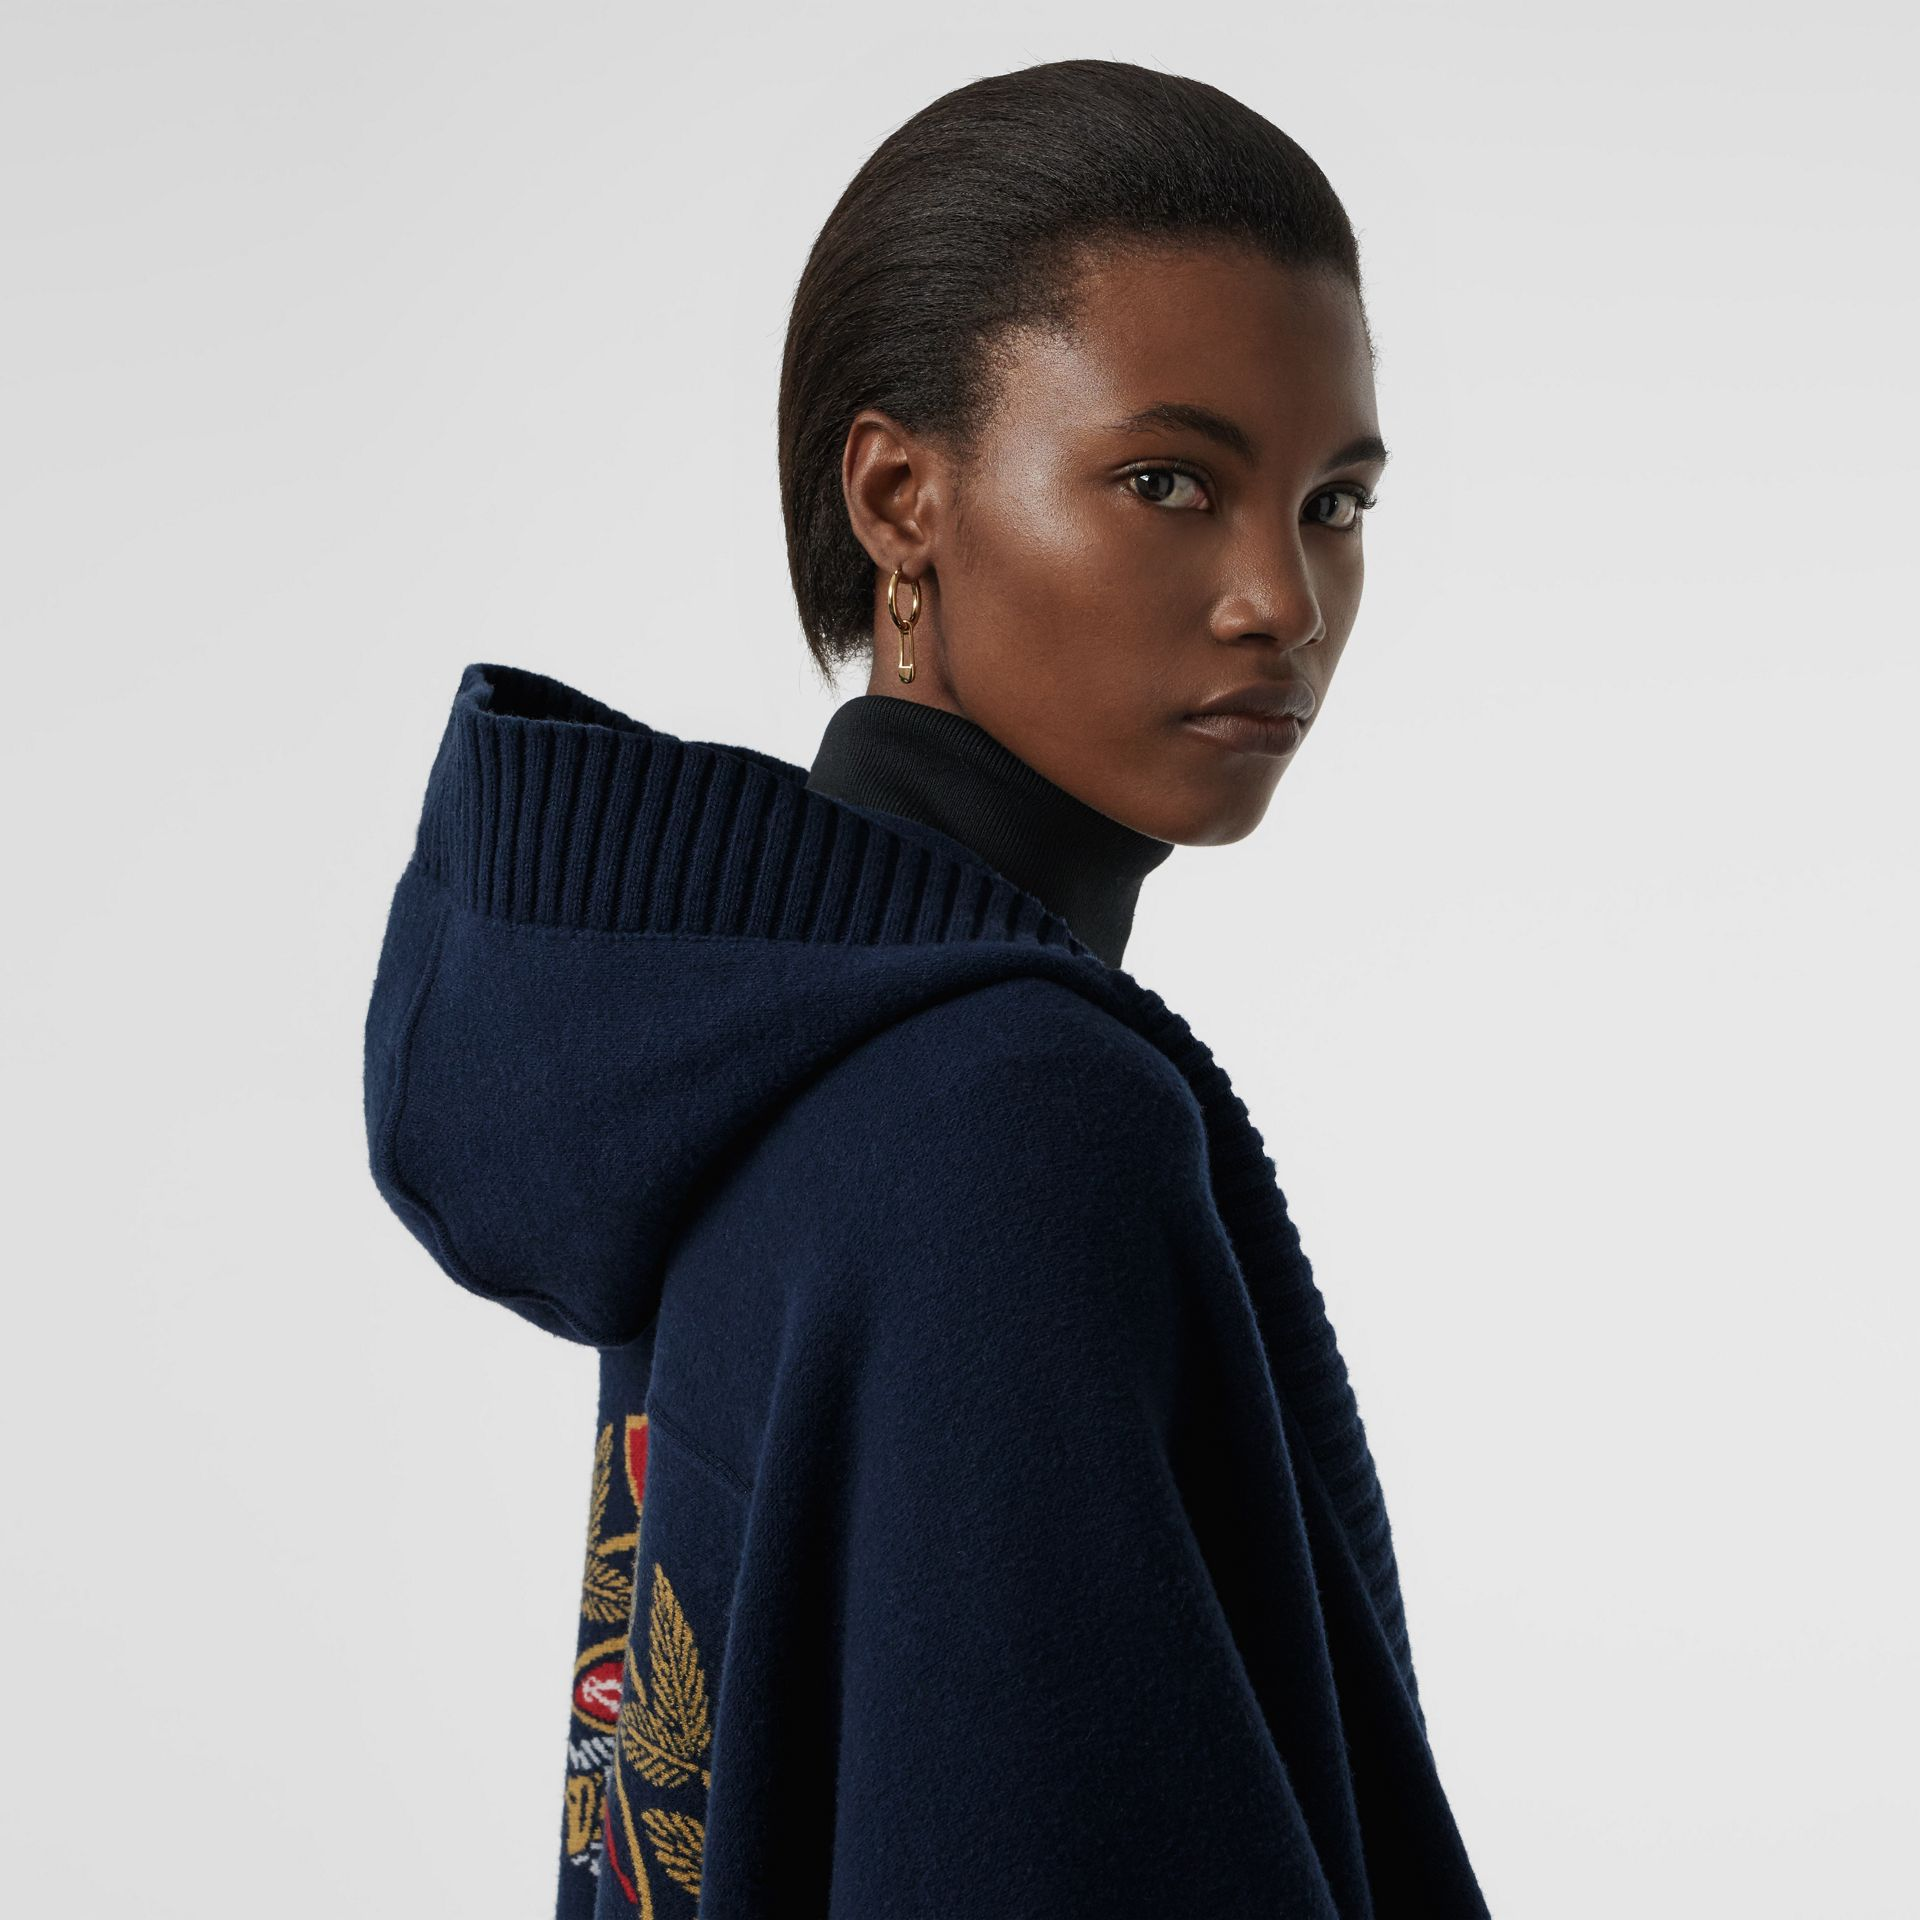 Crest Jacquard Wool Blend Hooded Cape in Navy - Women | Burberry Australia - gallery image 1